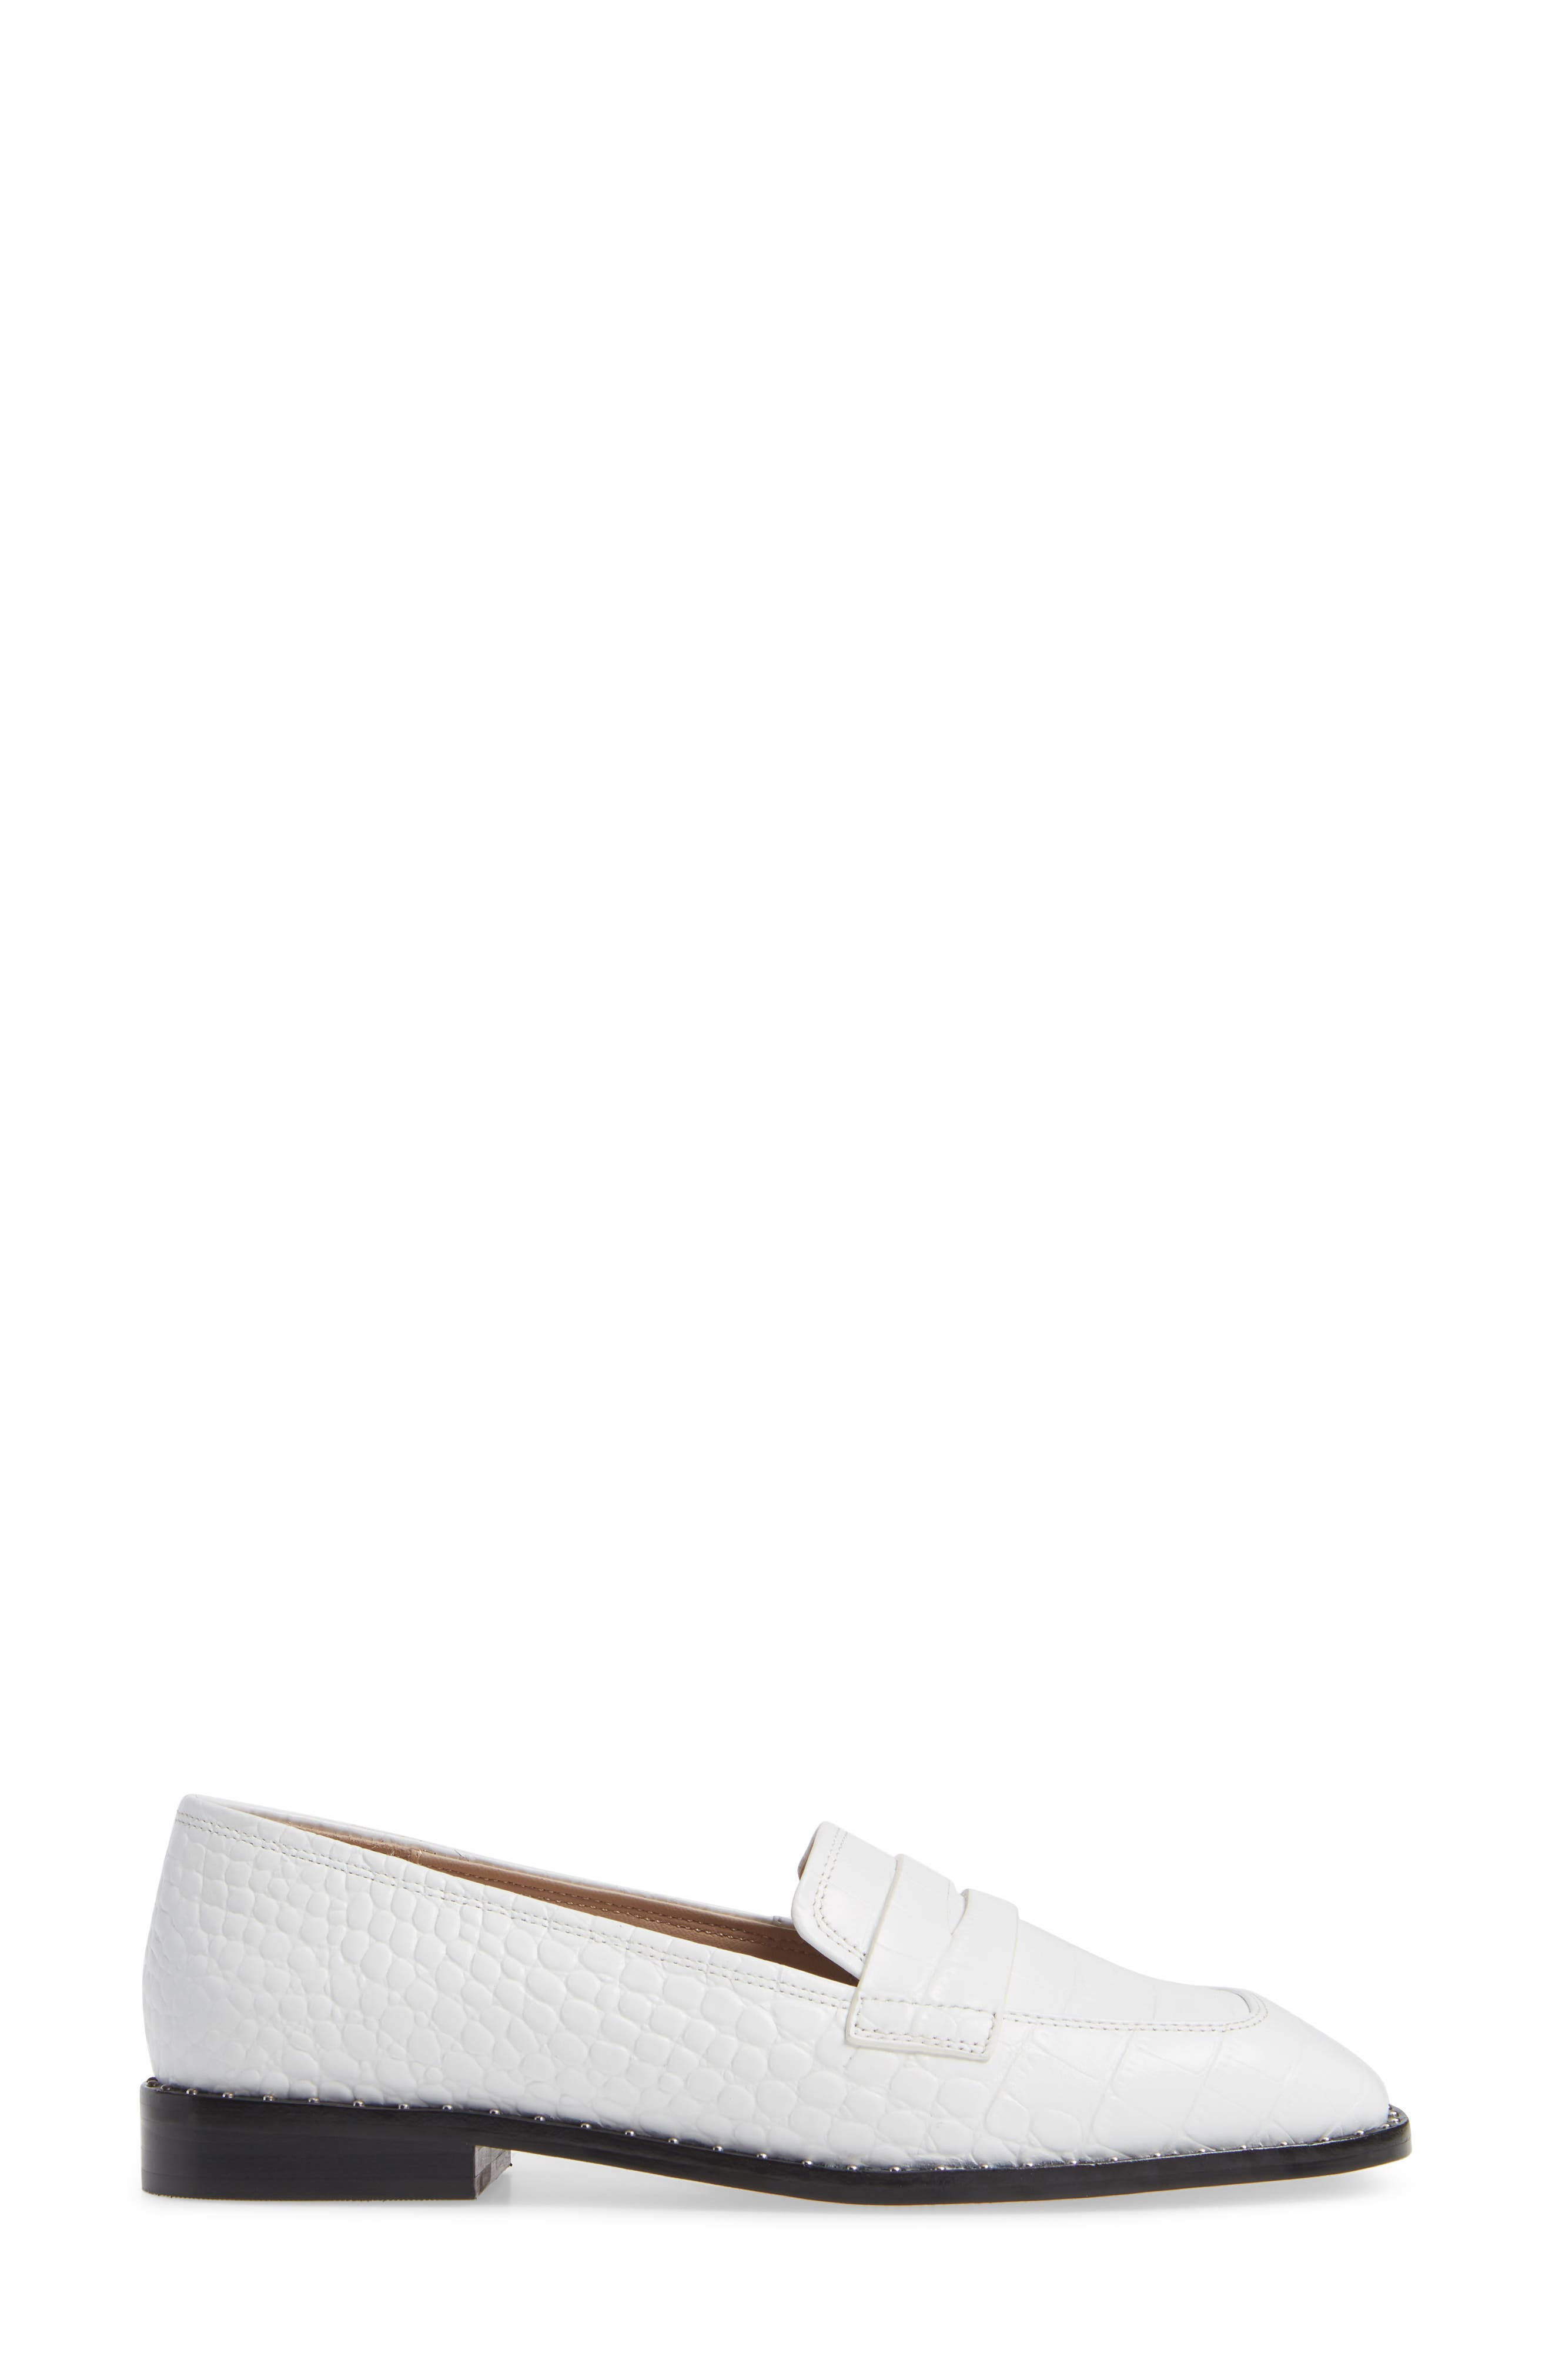 Amado Loafer,                             Alternate thumbnail 3, color,                             WHITE EMBOSSED CROCO LEATHER